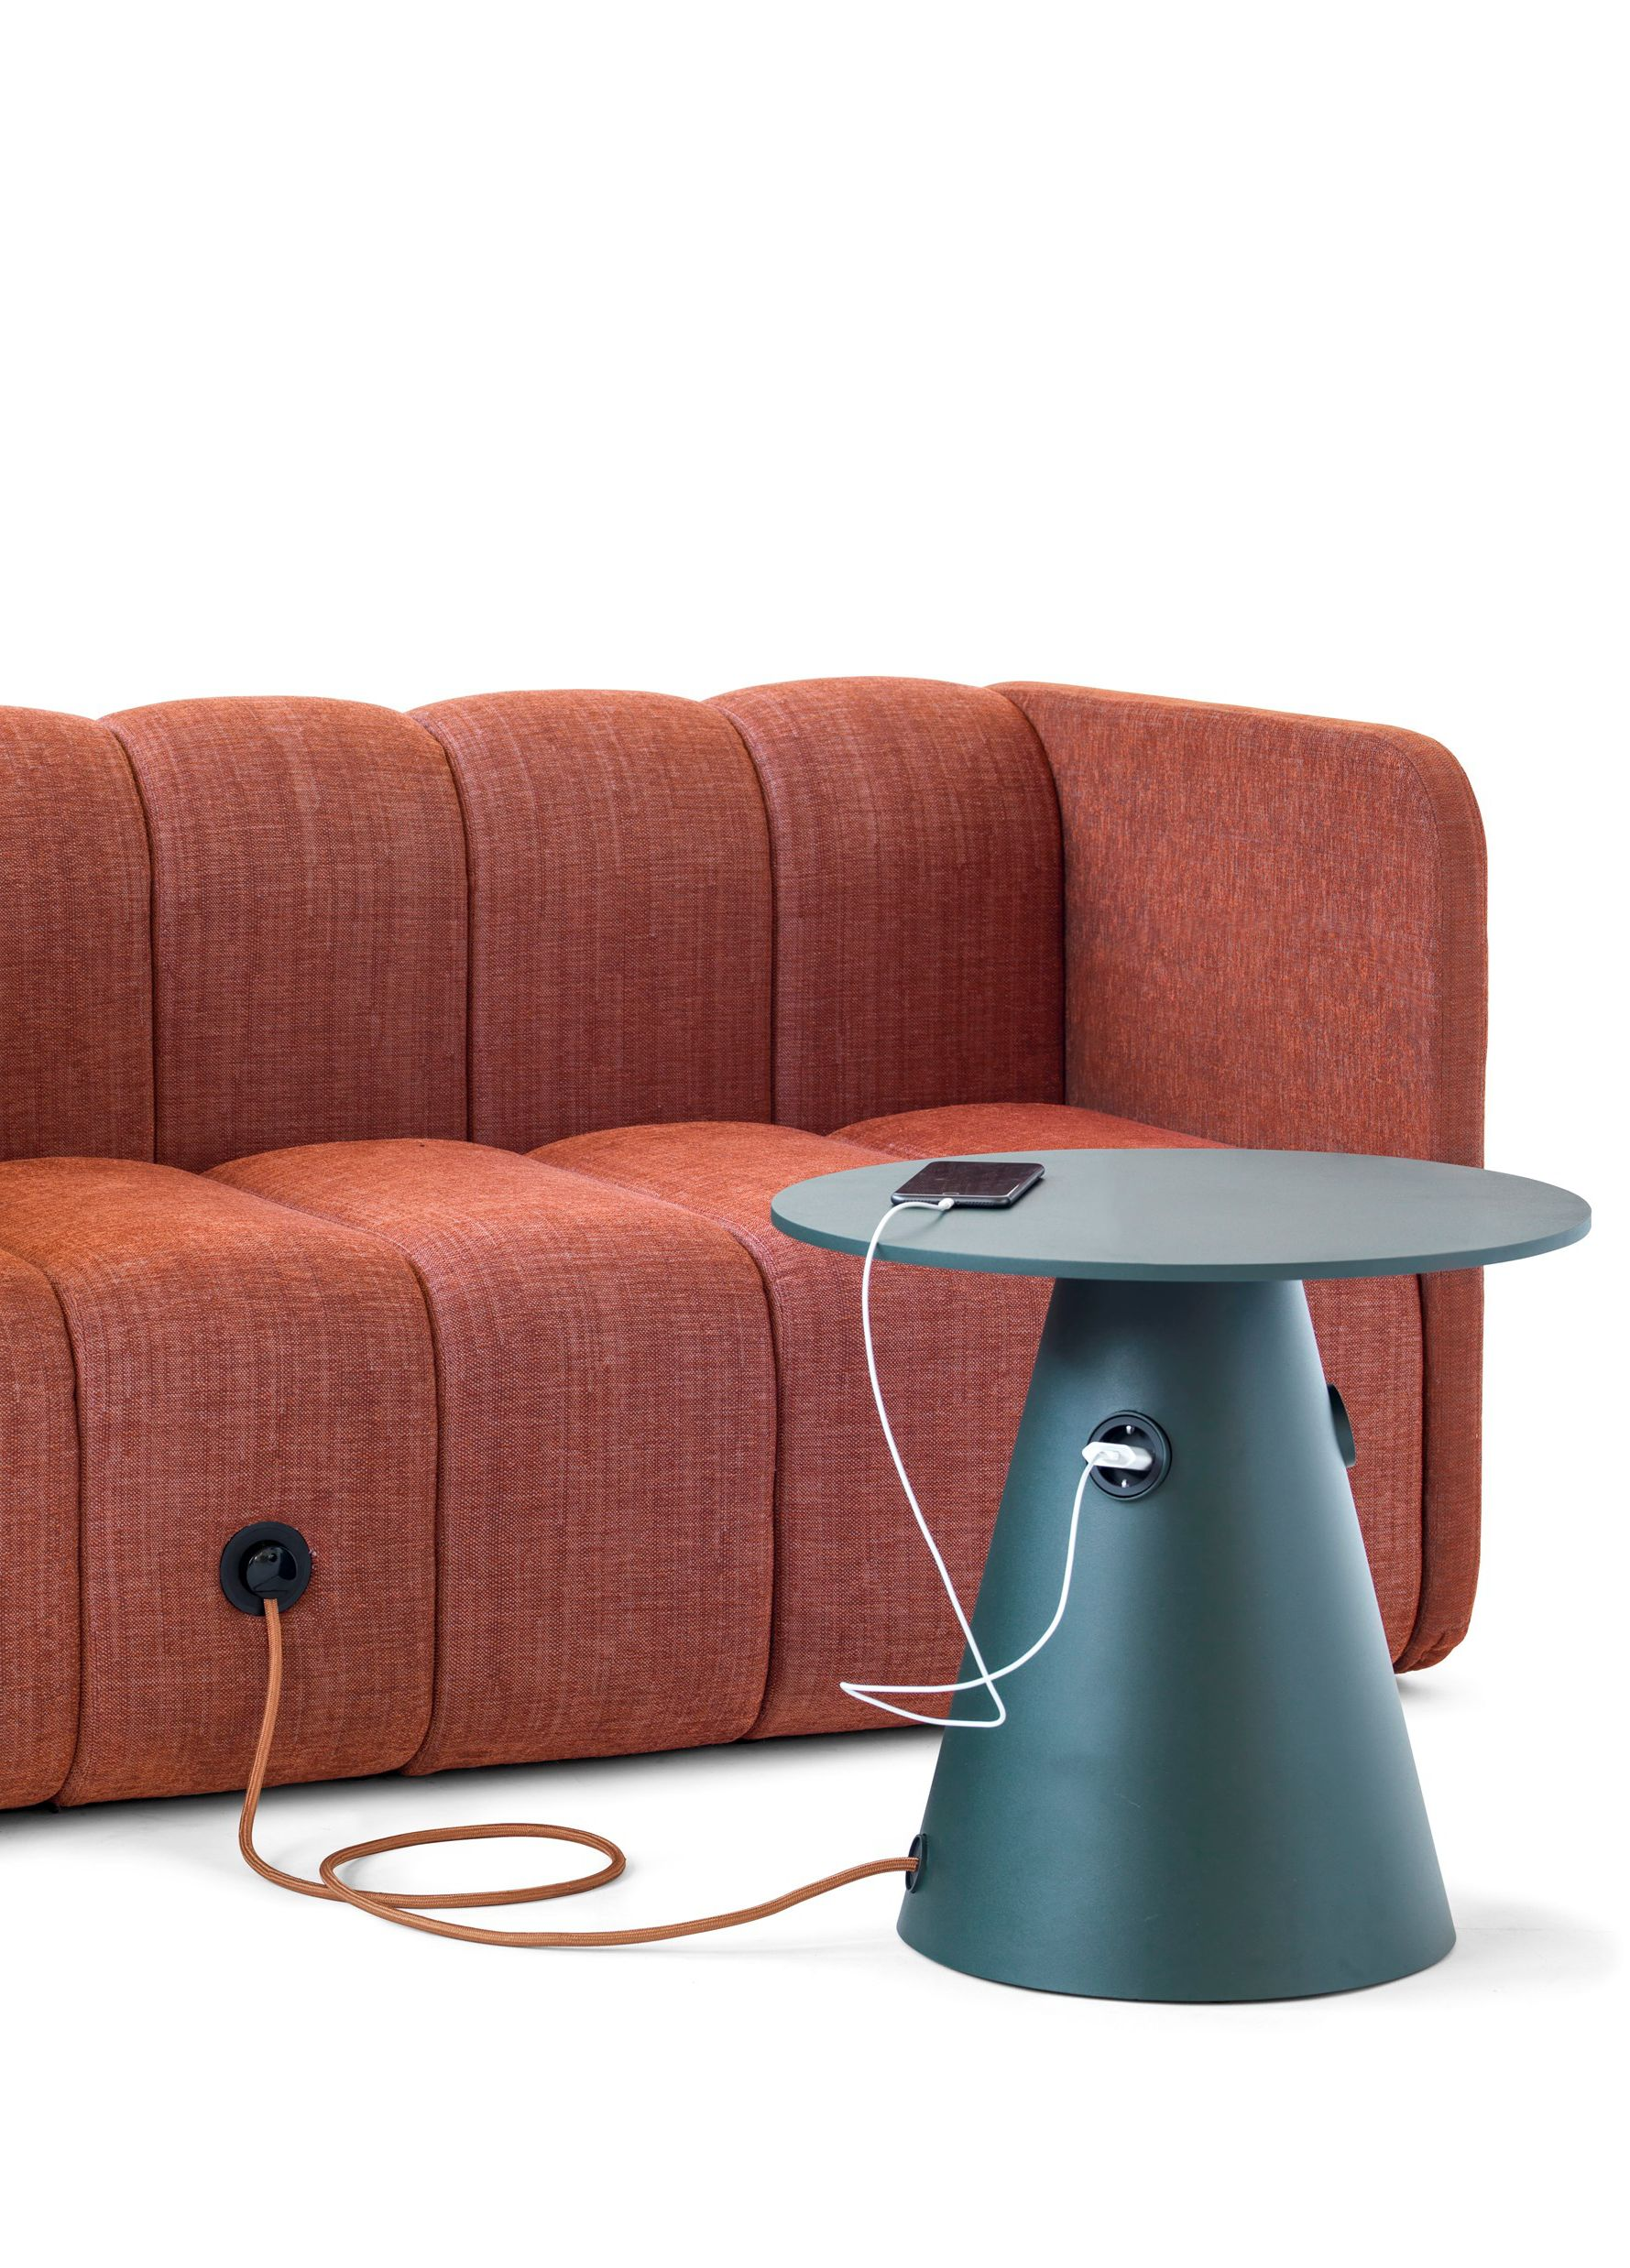 Joob Meubilair Bob Job 2 Seater Fabric Sofa By Blå Station Work Is Fun Pinterest